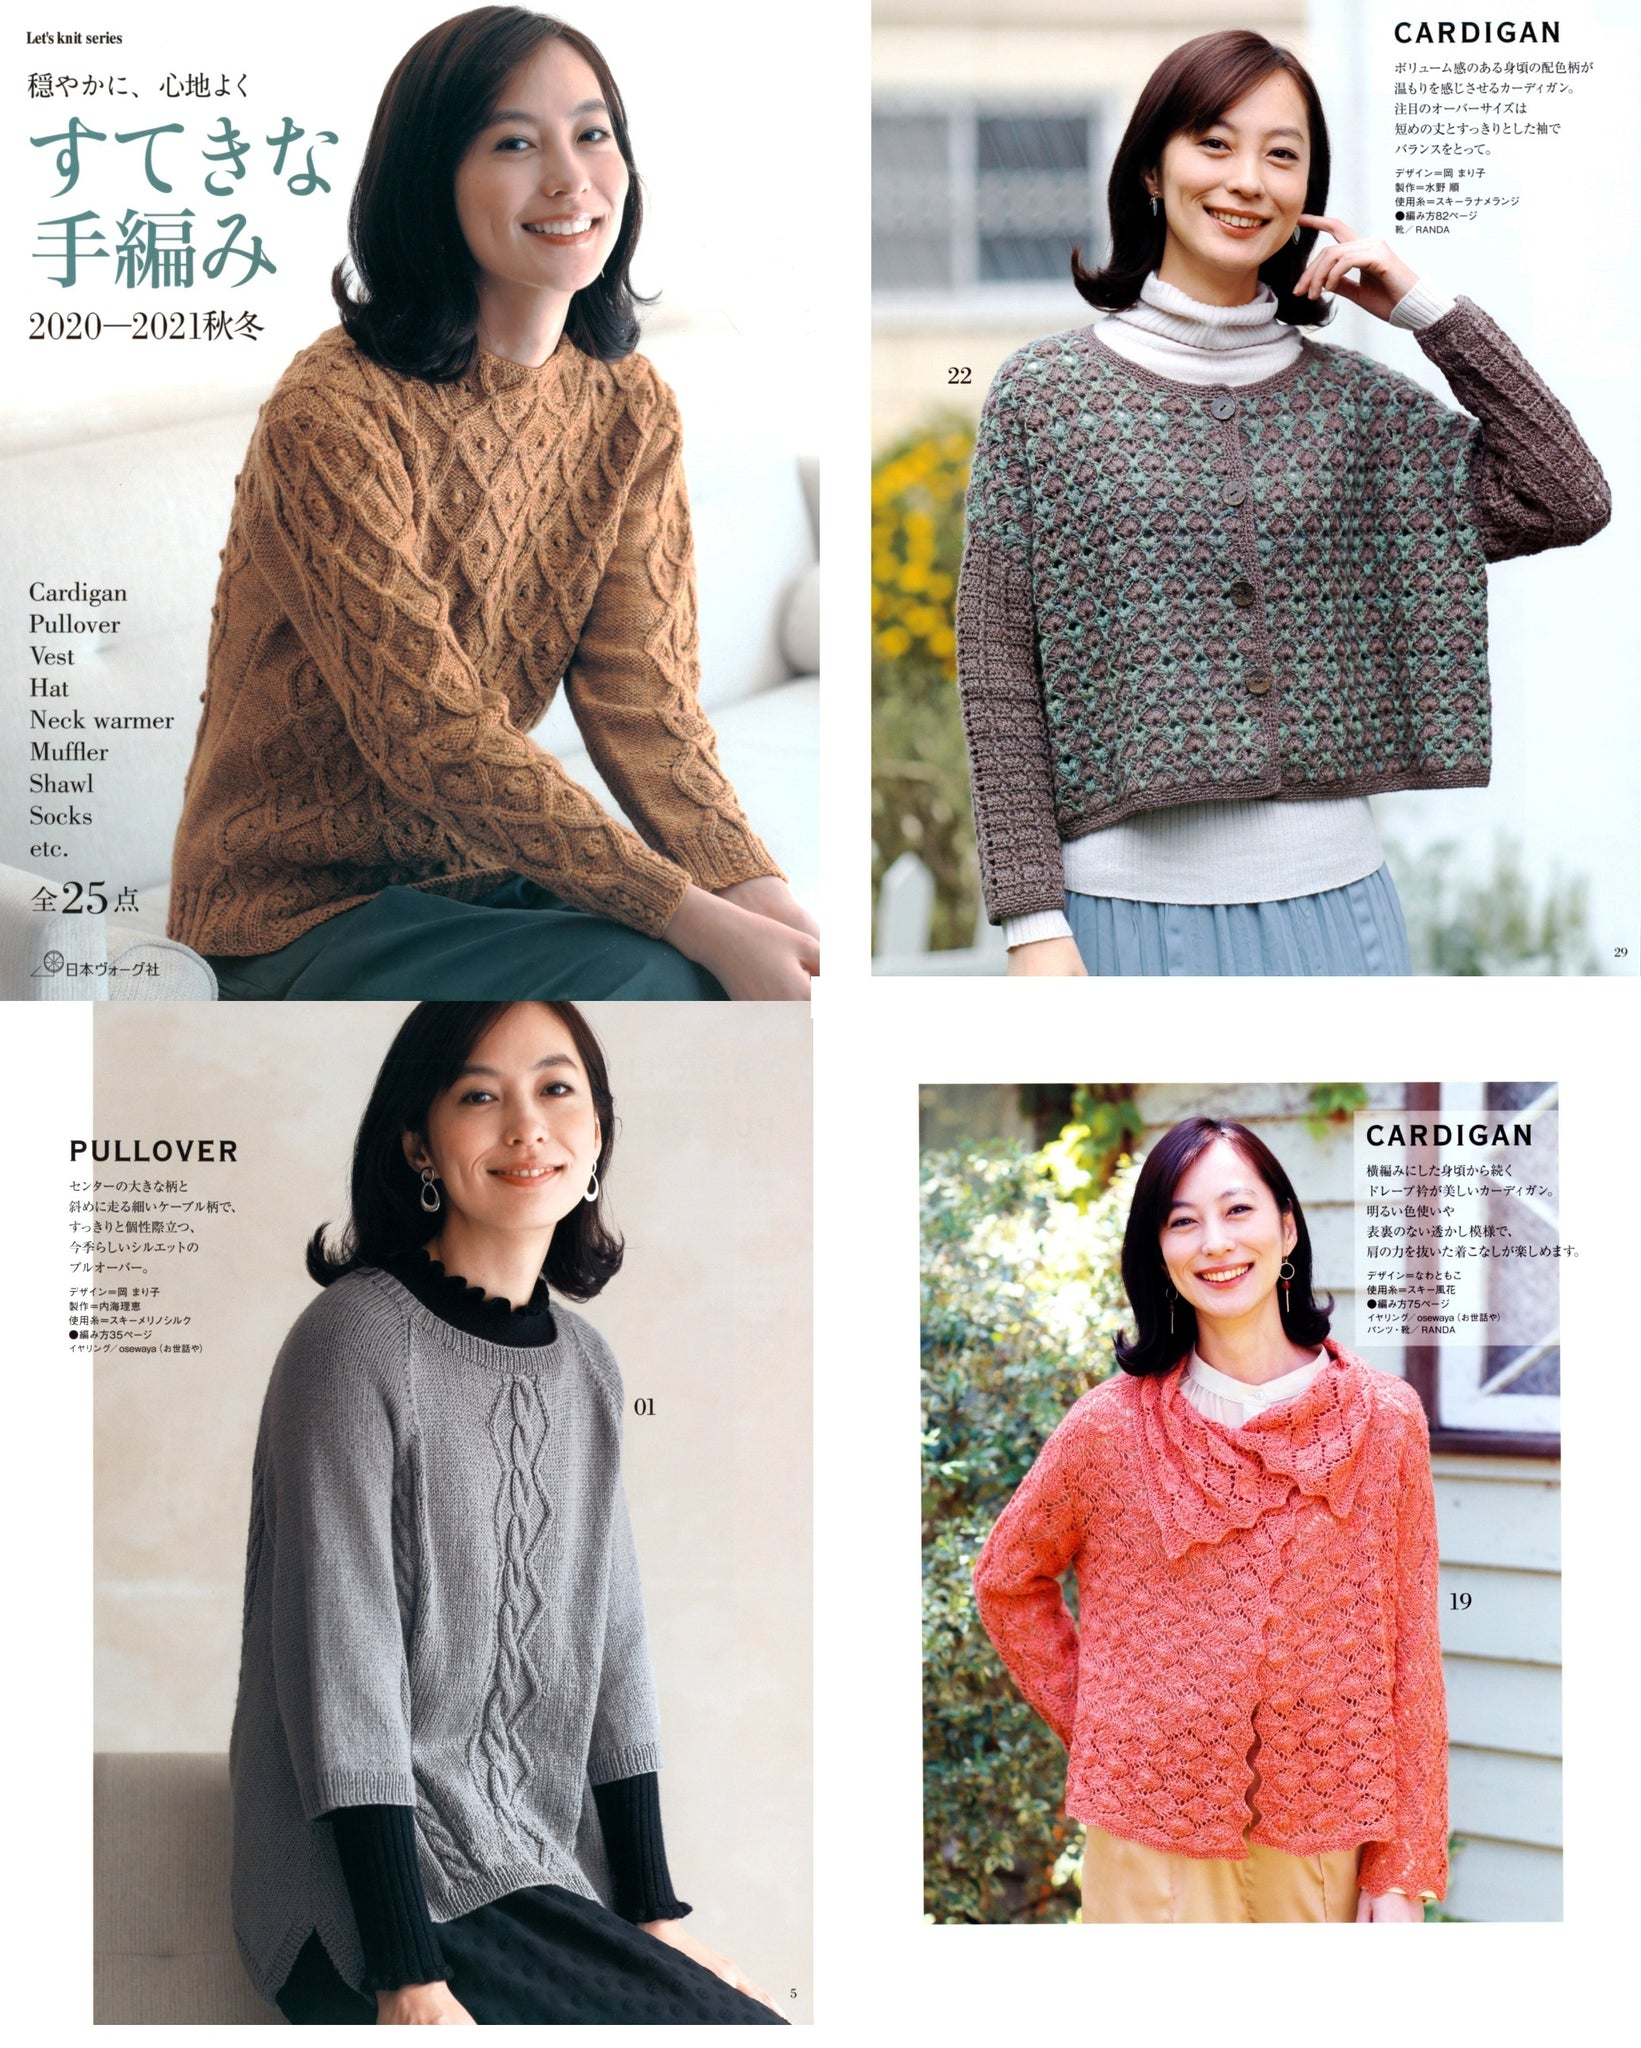 Knitting patterns for women's sweaters